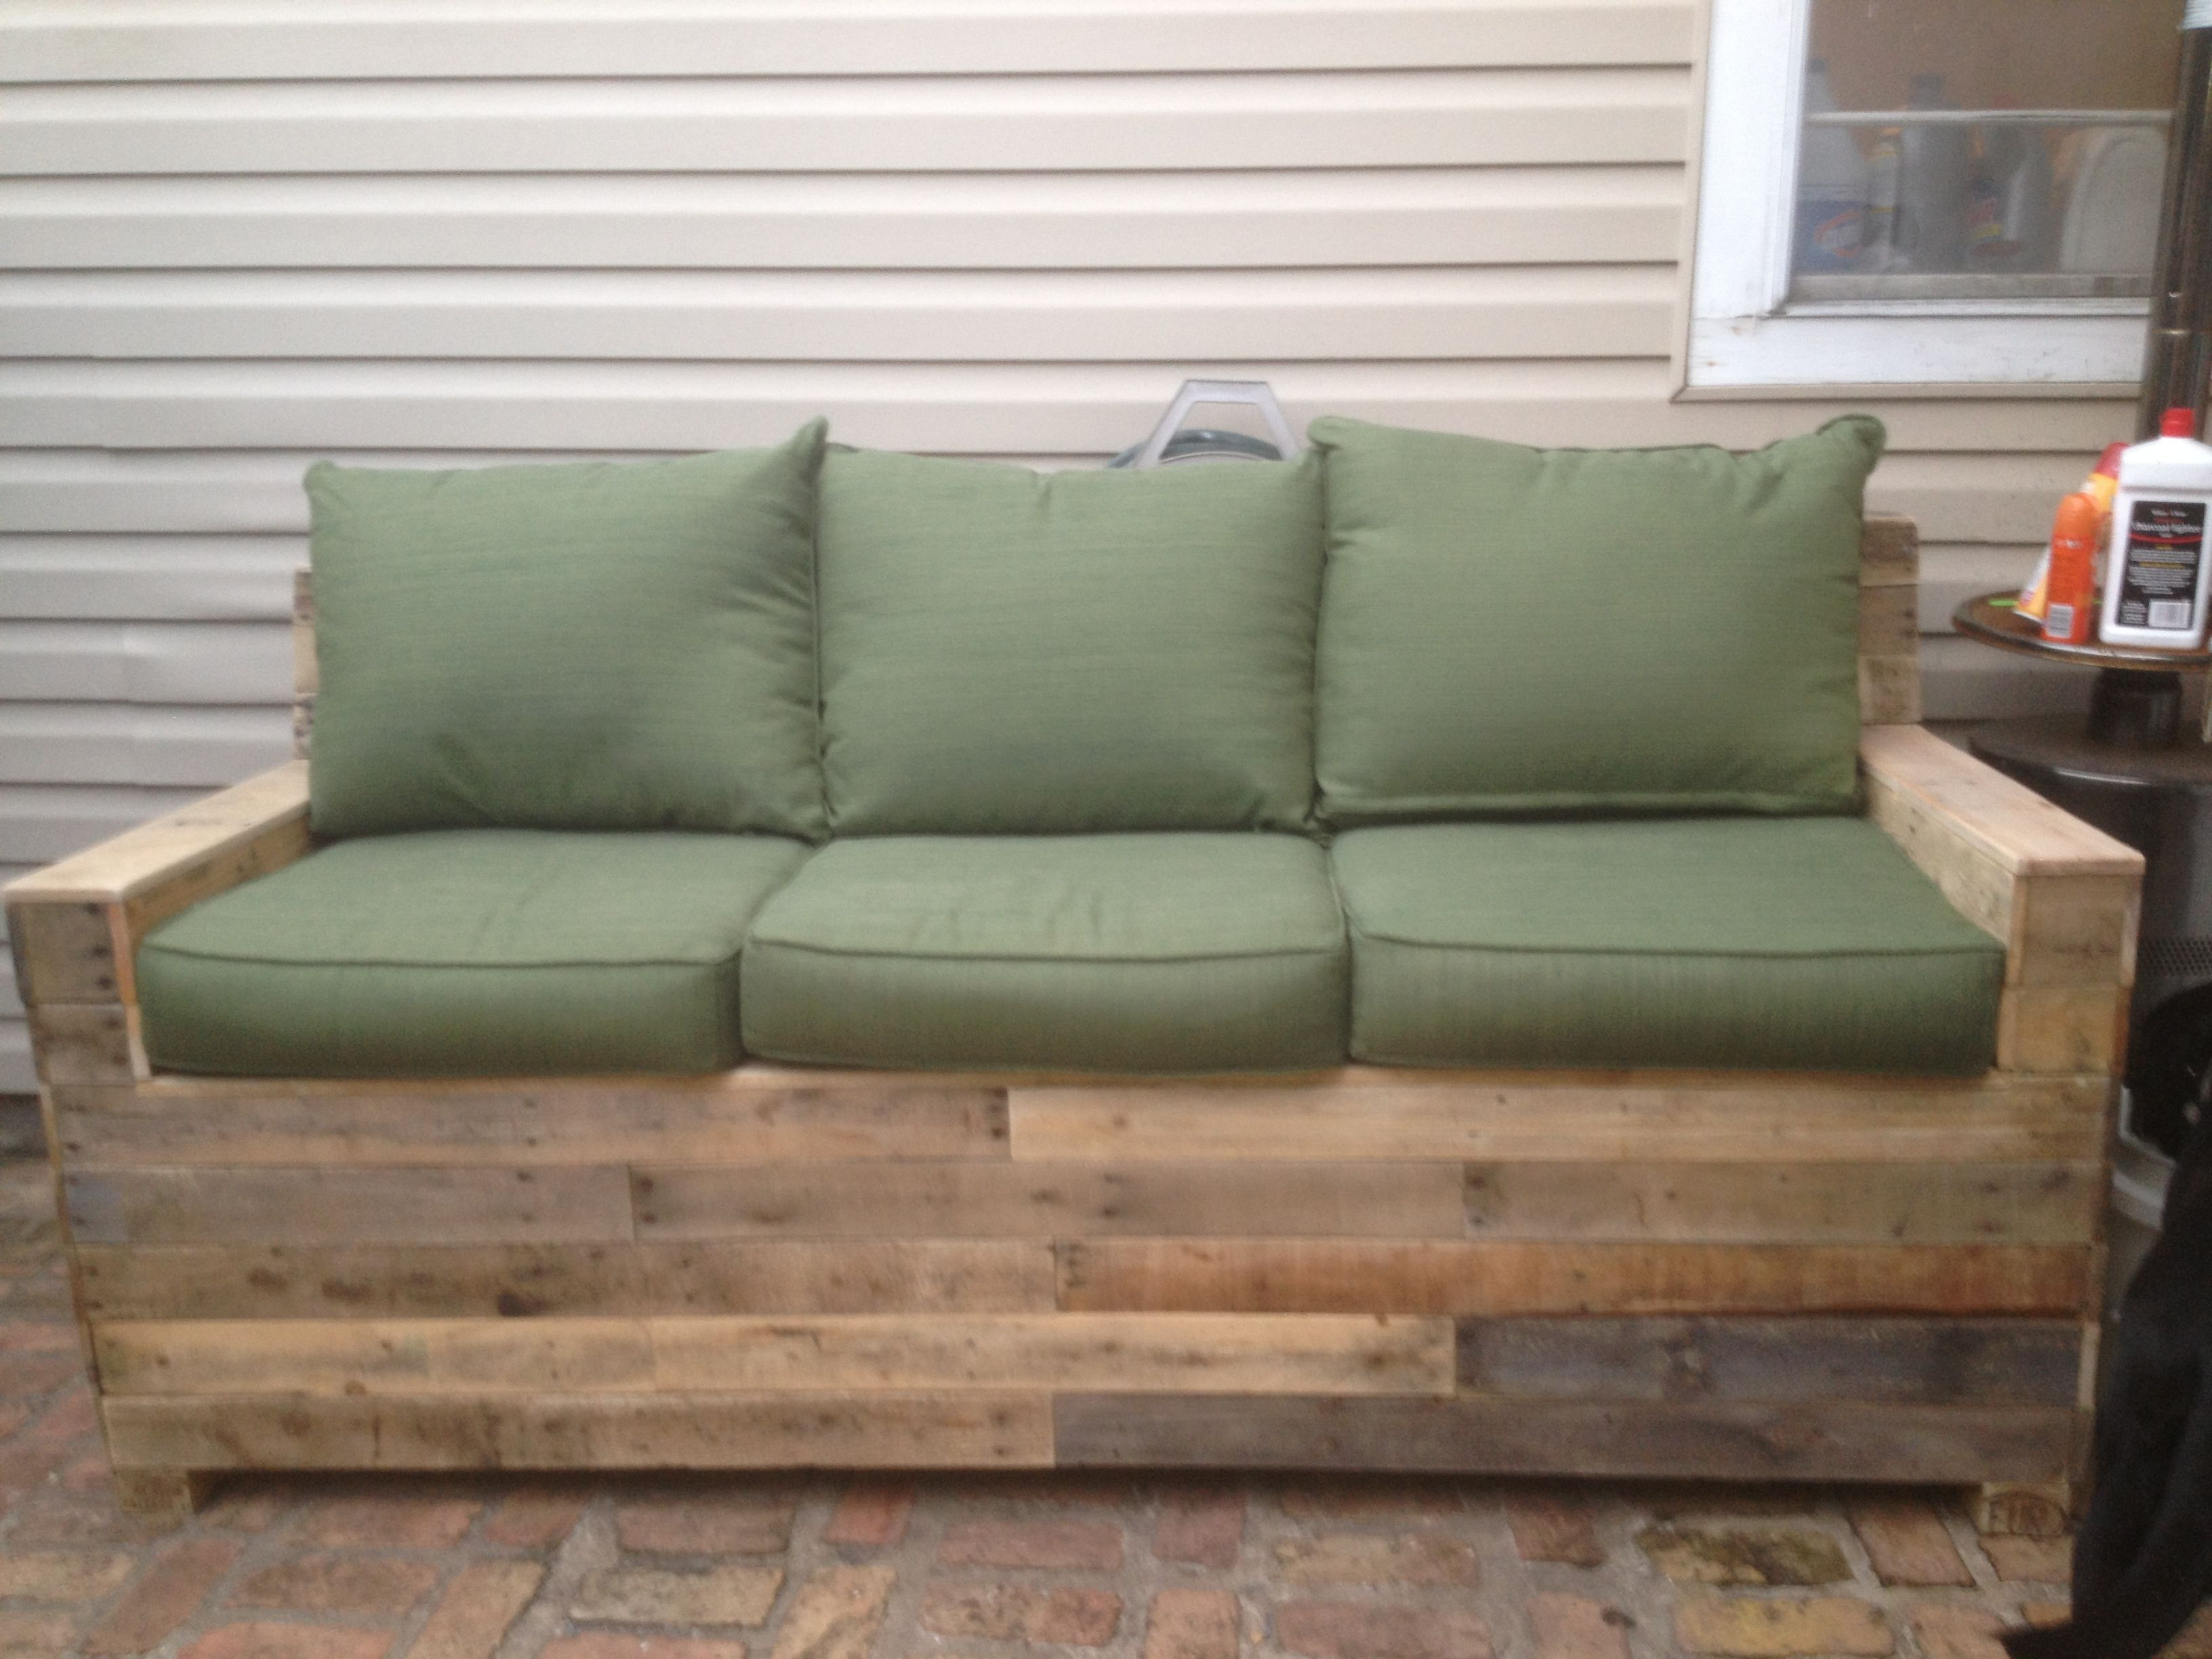 Pallet Sofa. For Sale $600